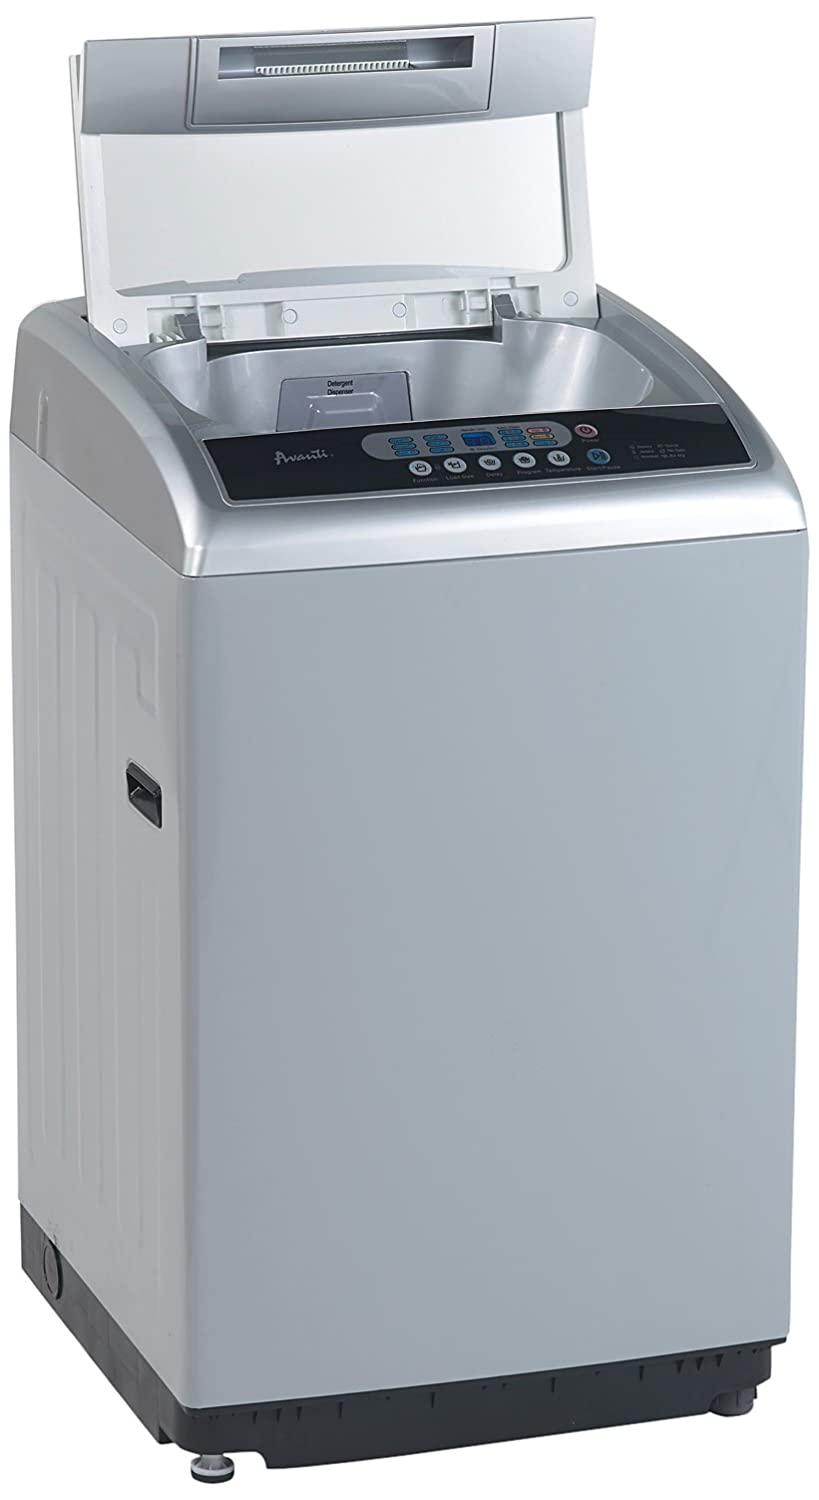 Avanti TLW21PS Top Load Washer, 2.1 cu. ft, Platinum OCI Major Appliance Distribution